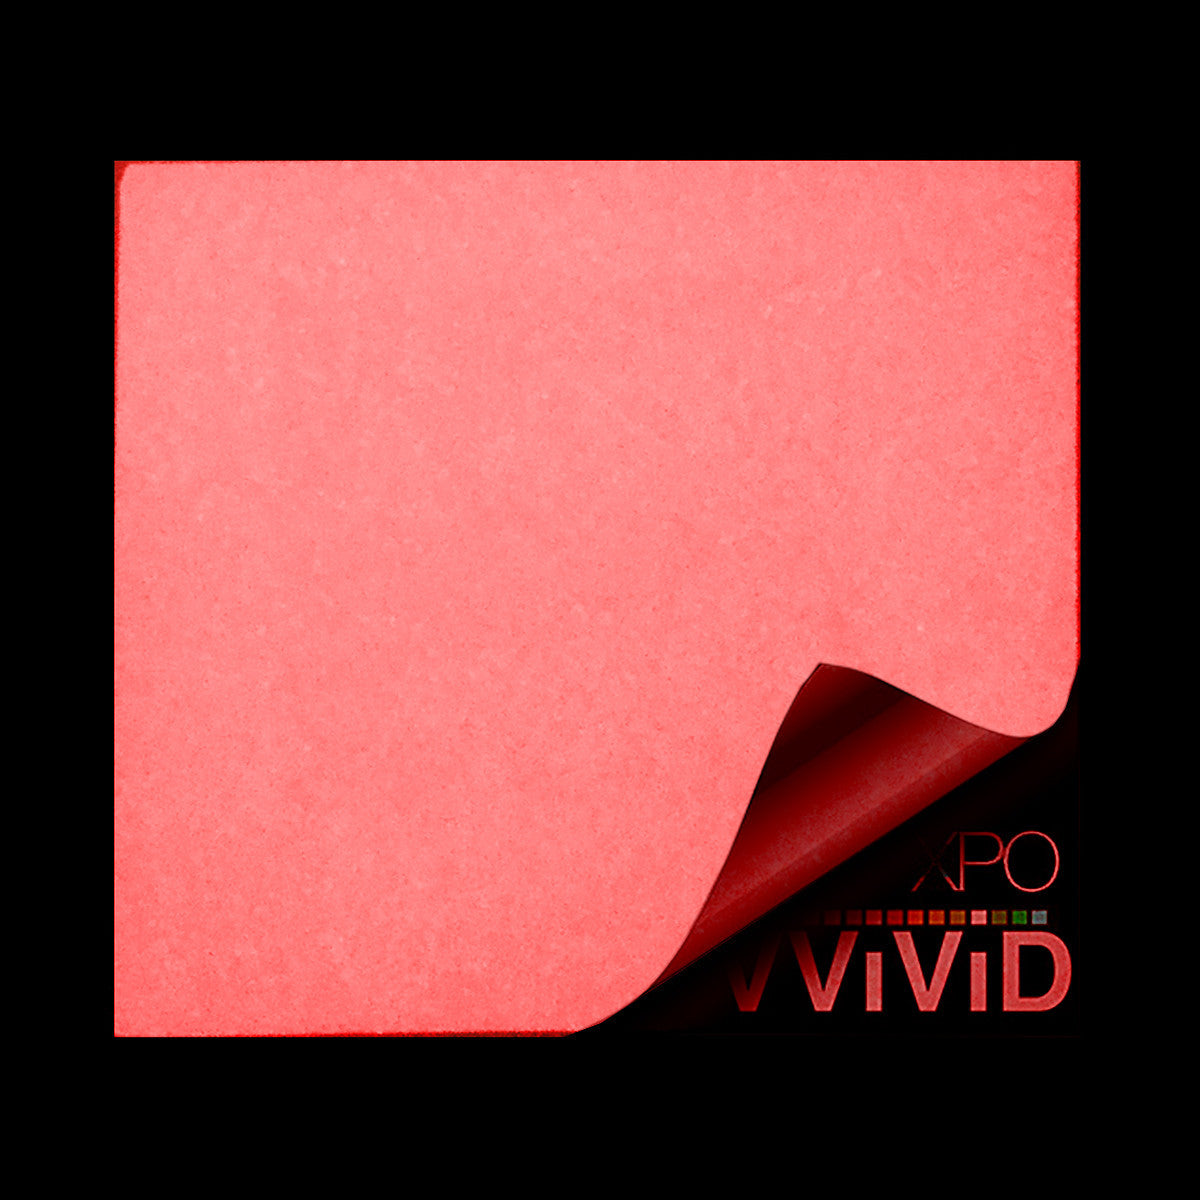 XPO Glow In The Dark Red Vinyl Wrap | Vvivid Canada